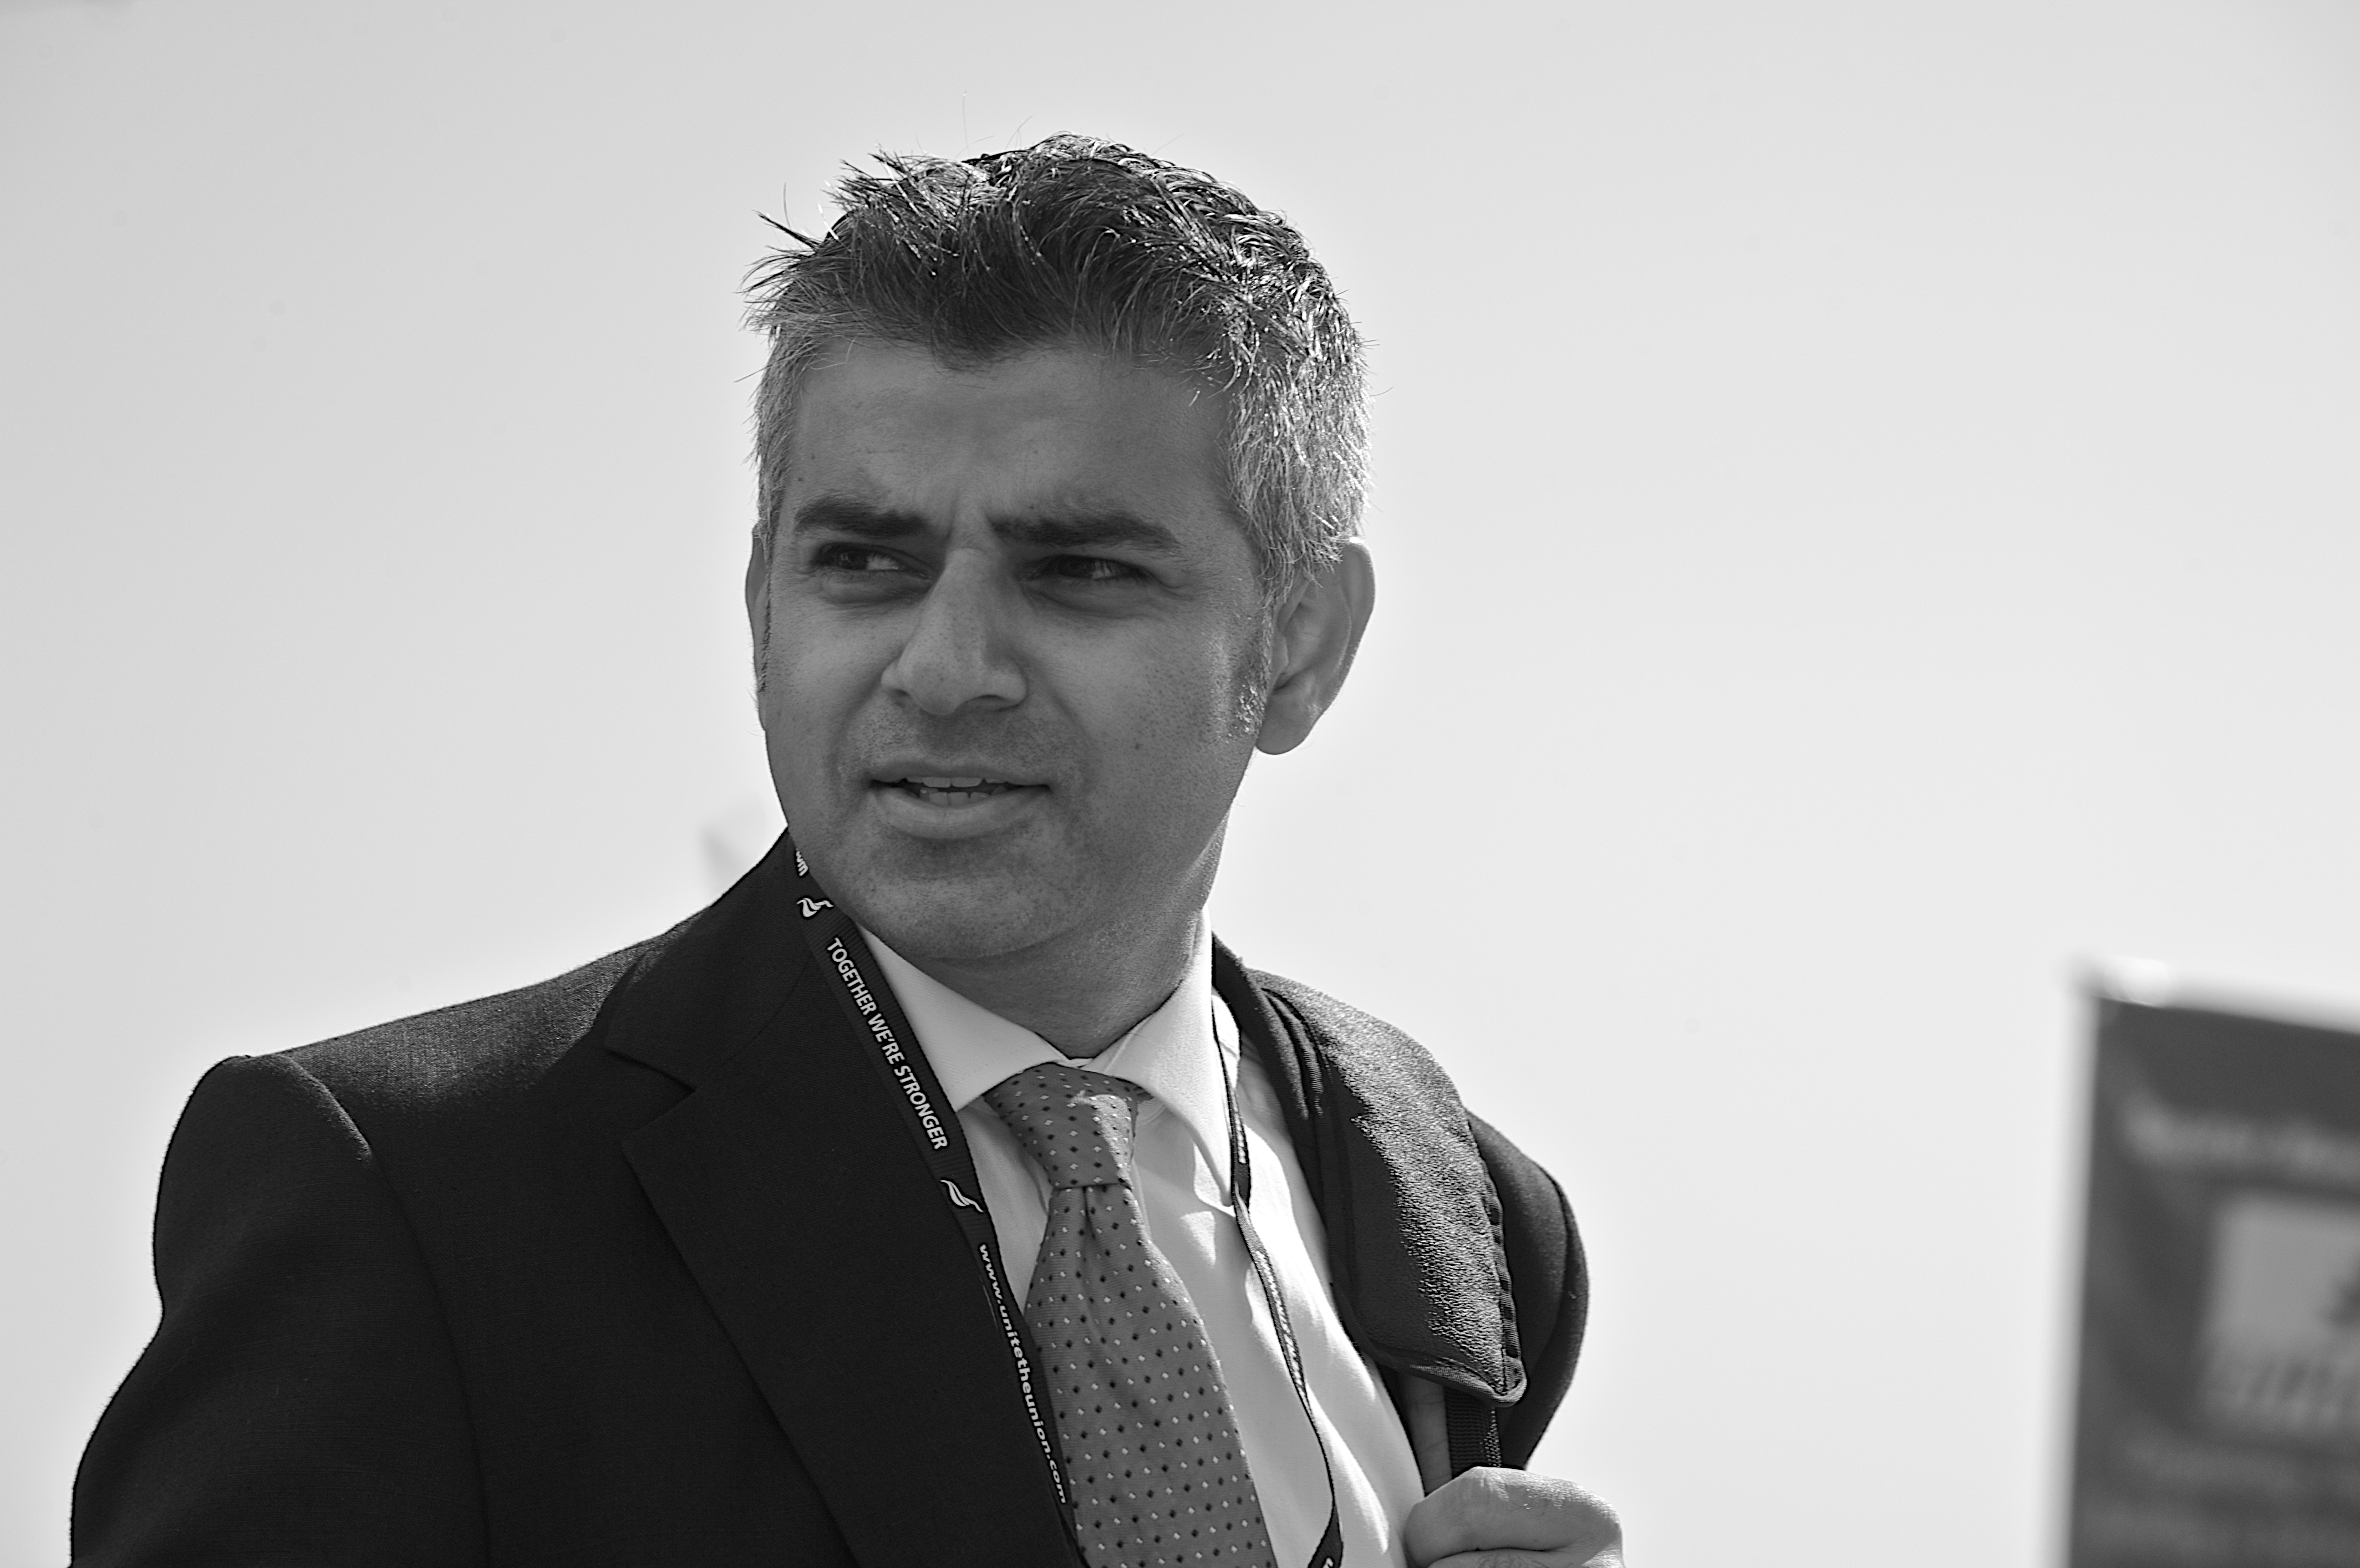 London is open for business and welcomes all, says Sadiq Khan